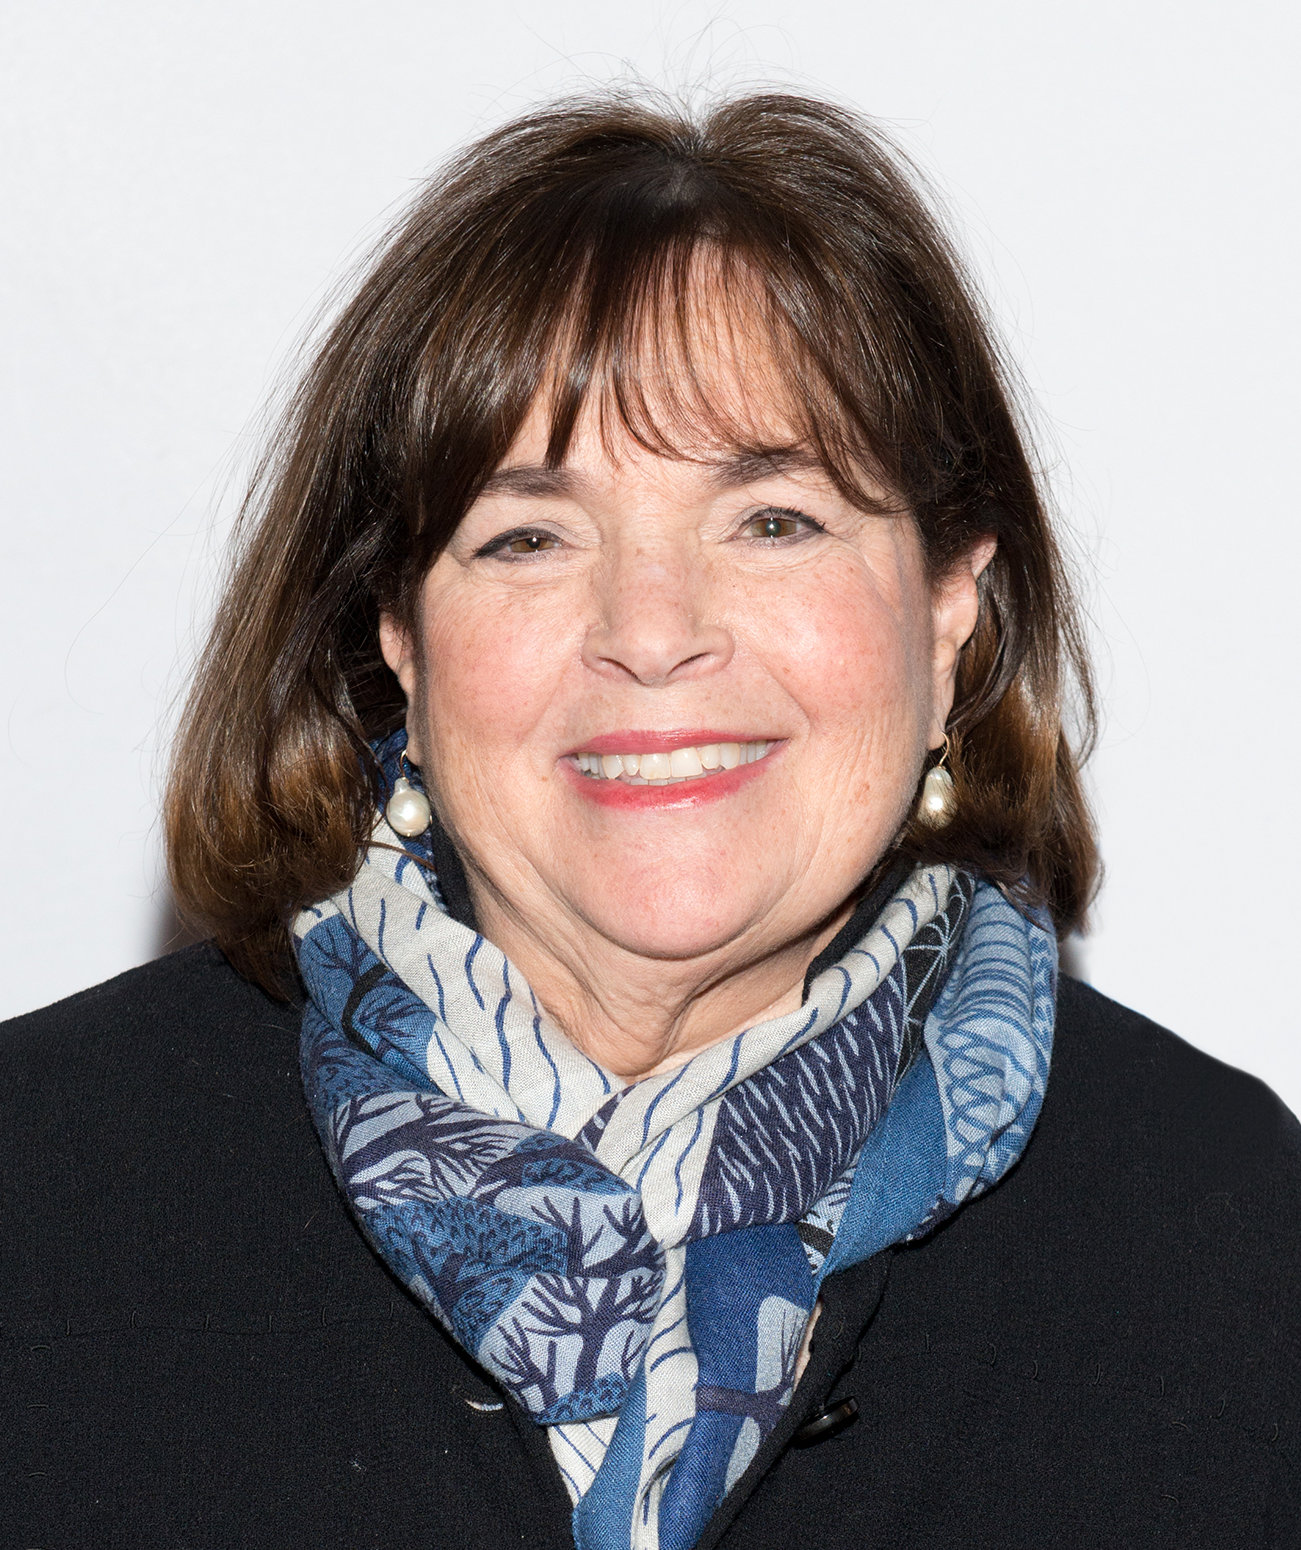 Why Ina Garten Named Her Show 'Barefoot Contessa'